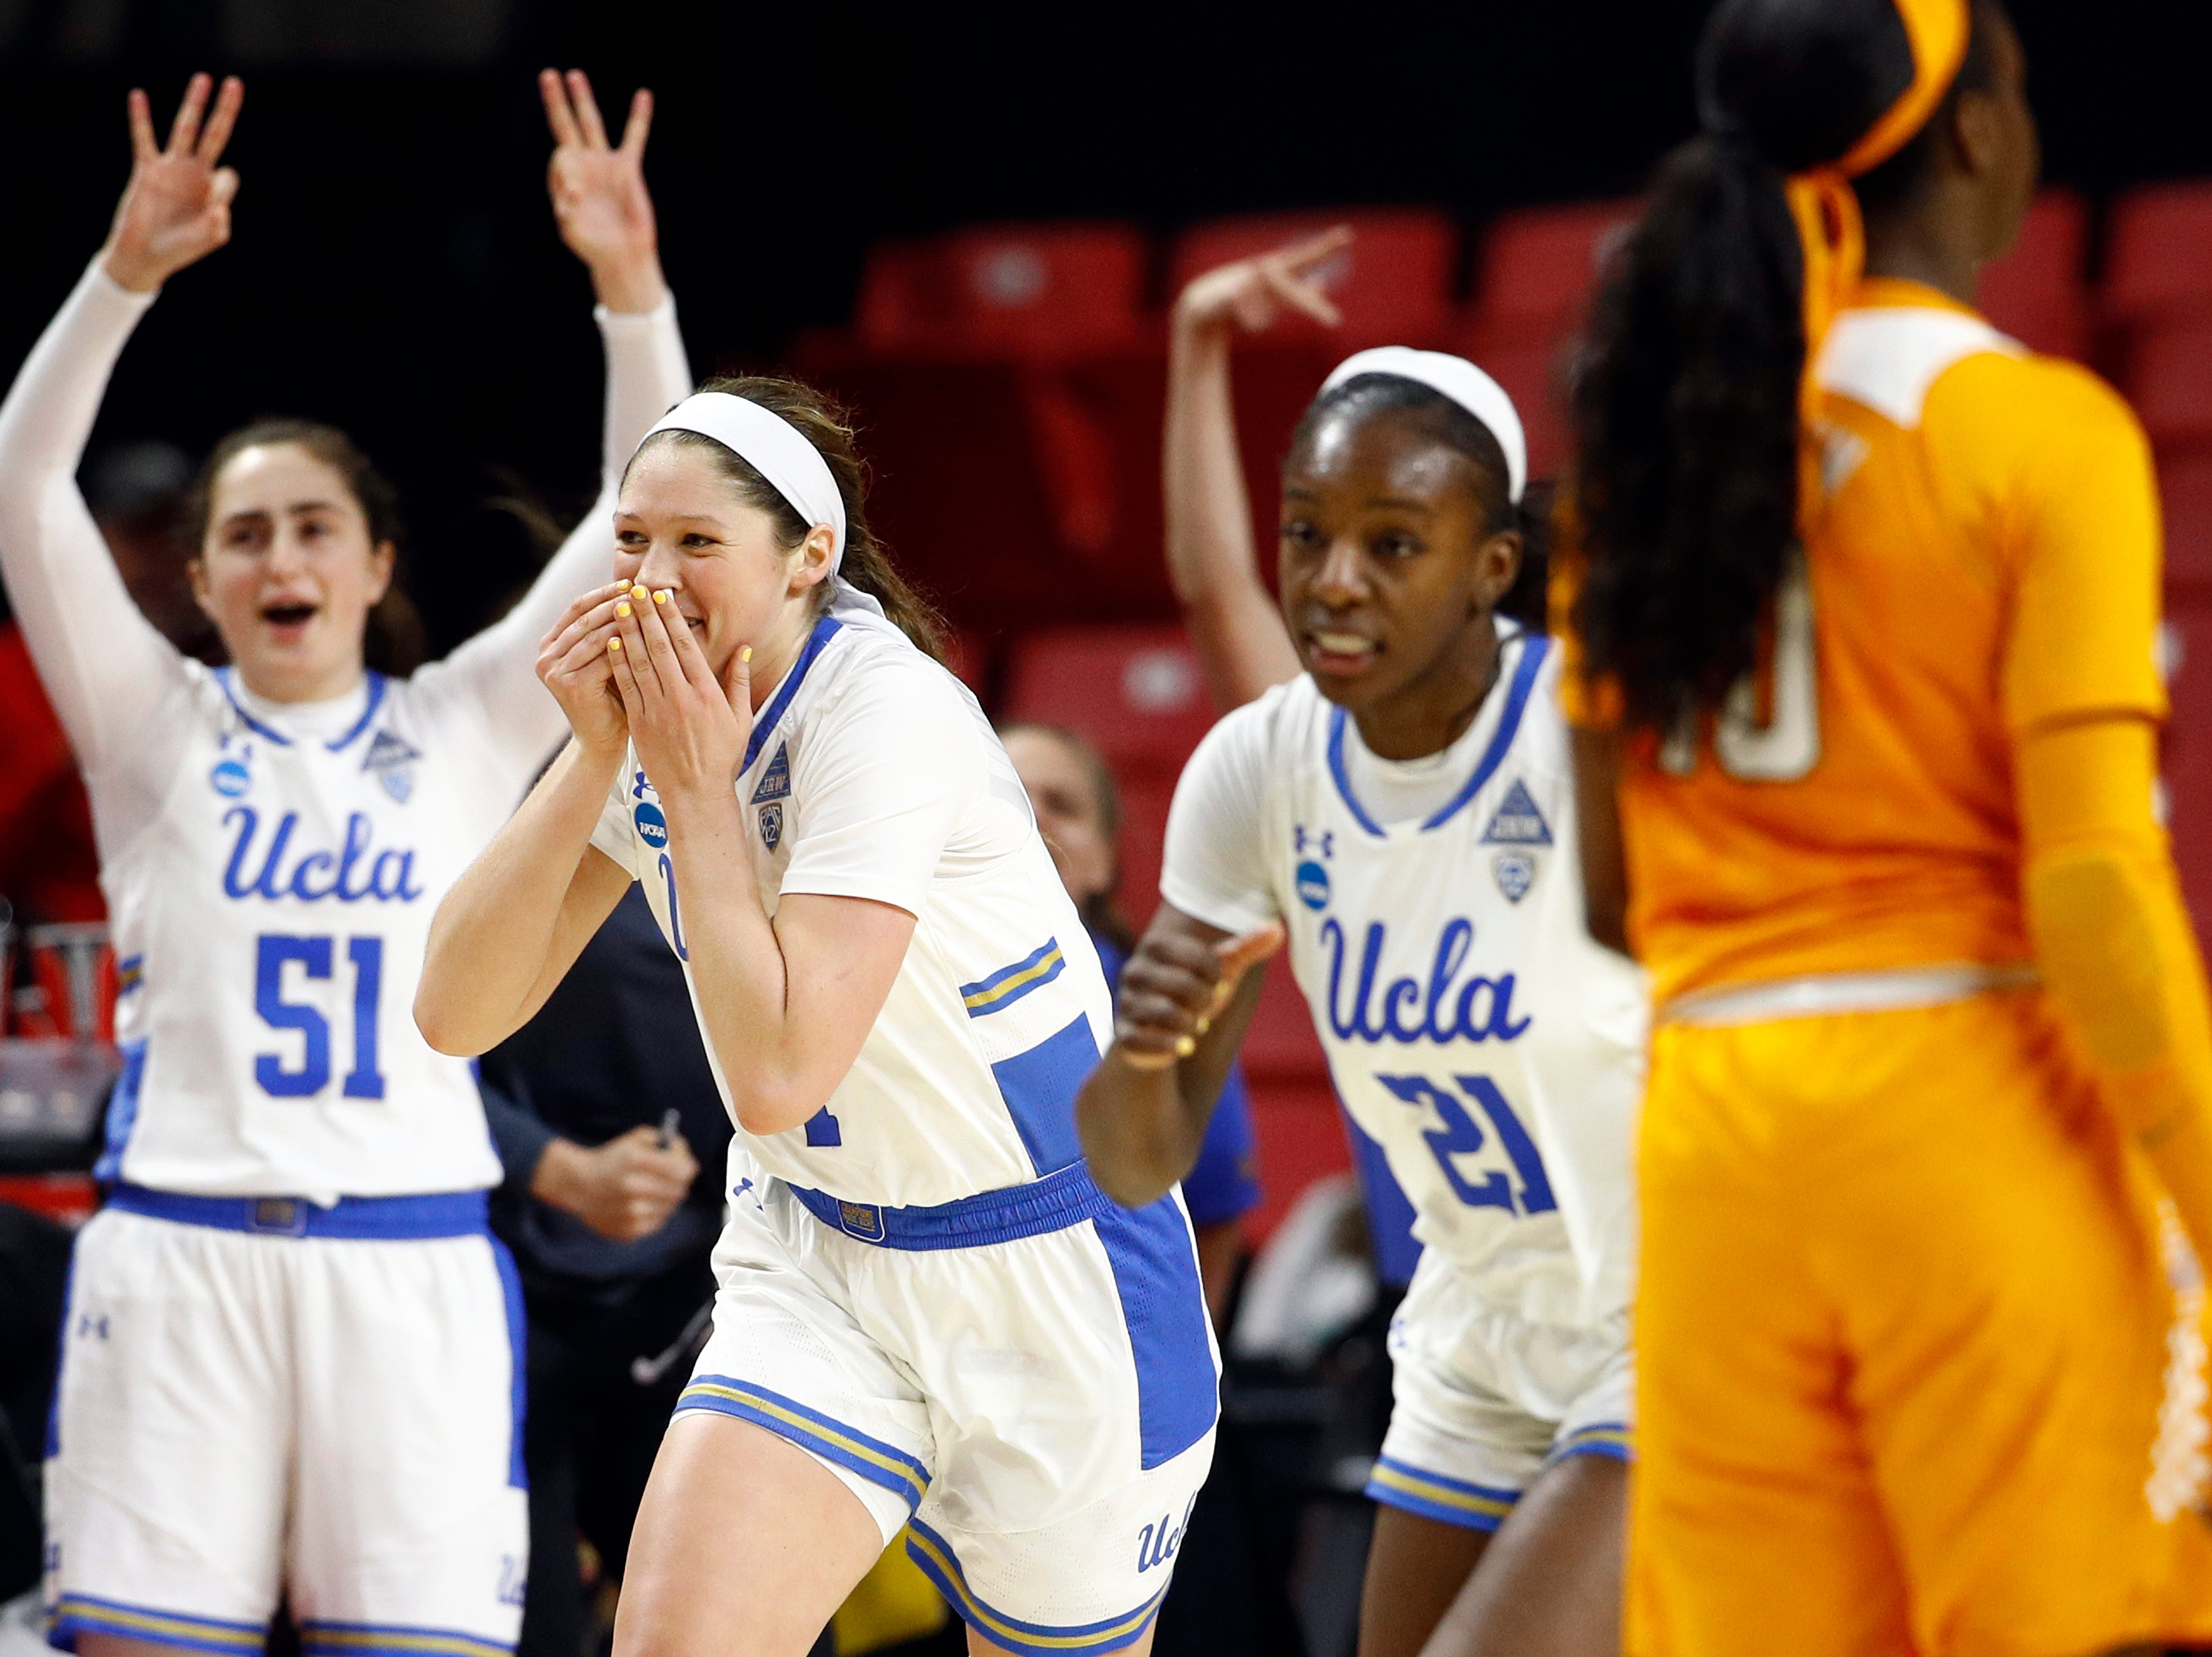 UCLA guard Lindsey Corsaro, second from left, reacts after making a 3-pointer in the second half of a first-round game against Tennessee in the NCAA women's college basketball tournament, Saturday, March 23, 2019, in College Park, Md. UCLA won 89-77.